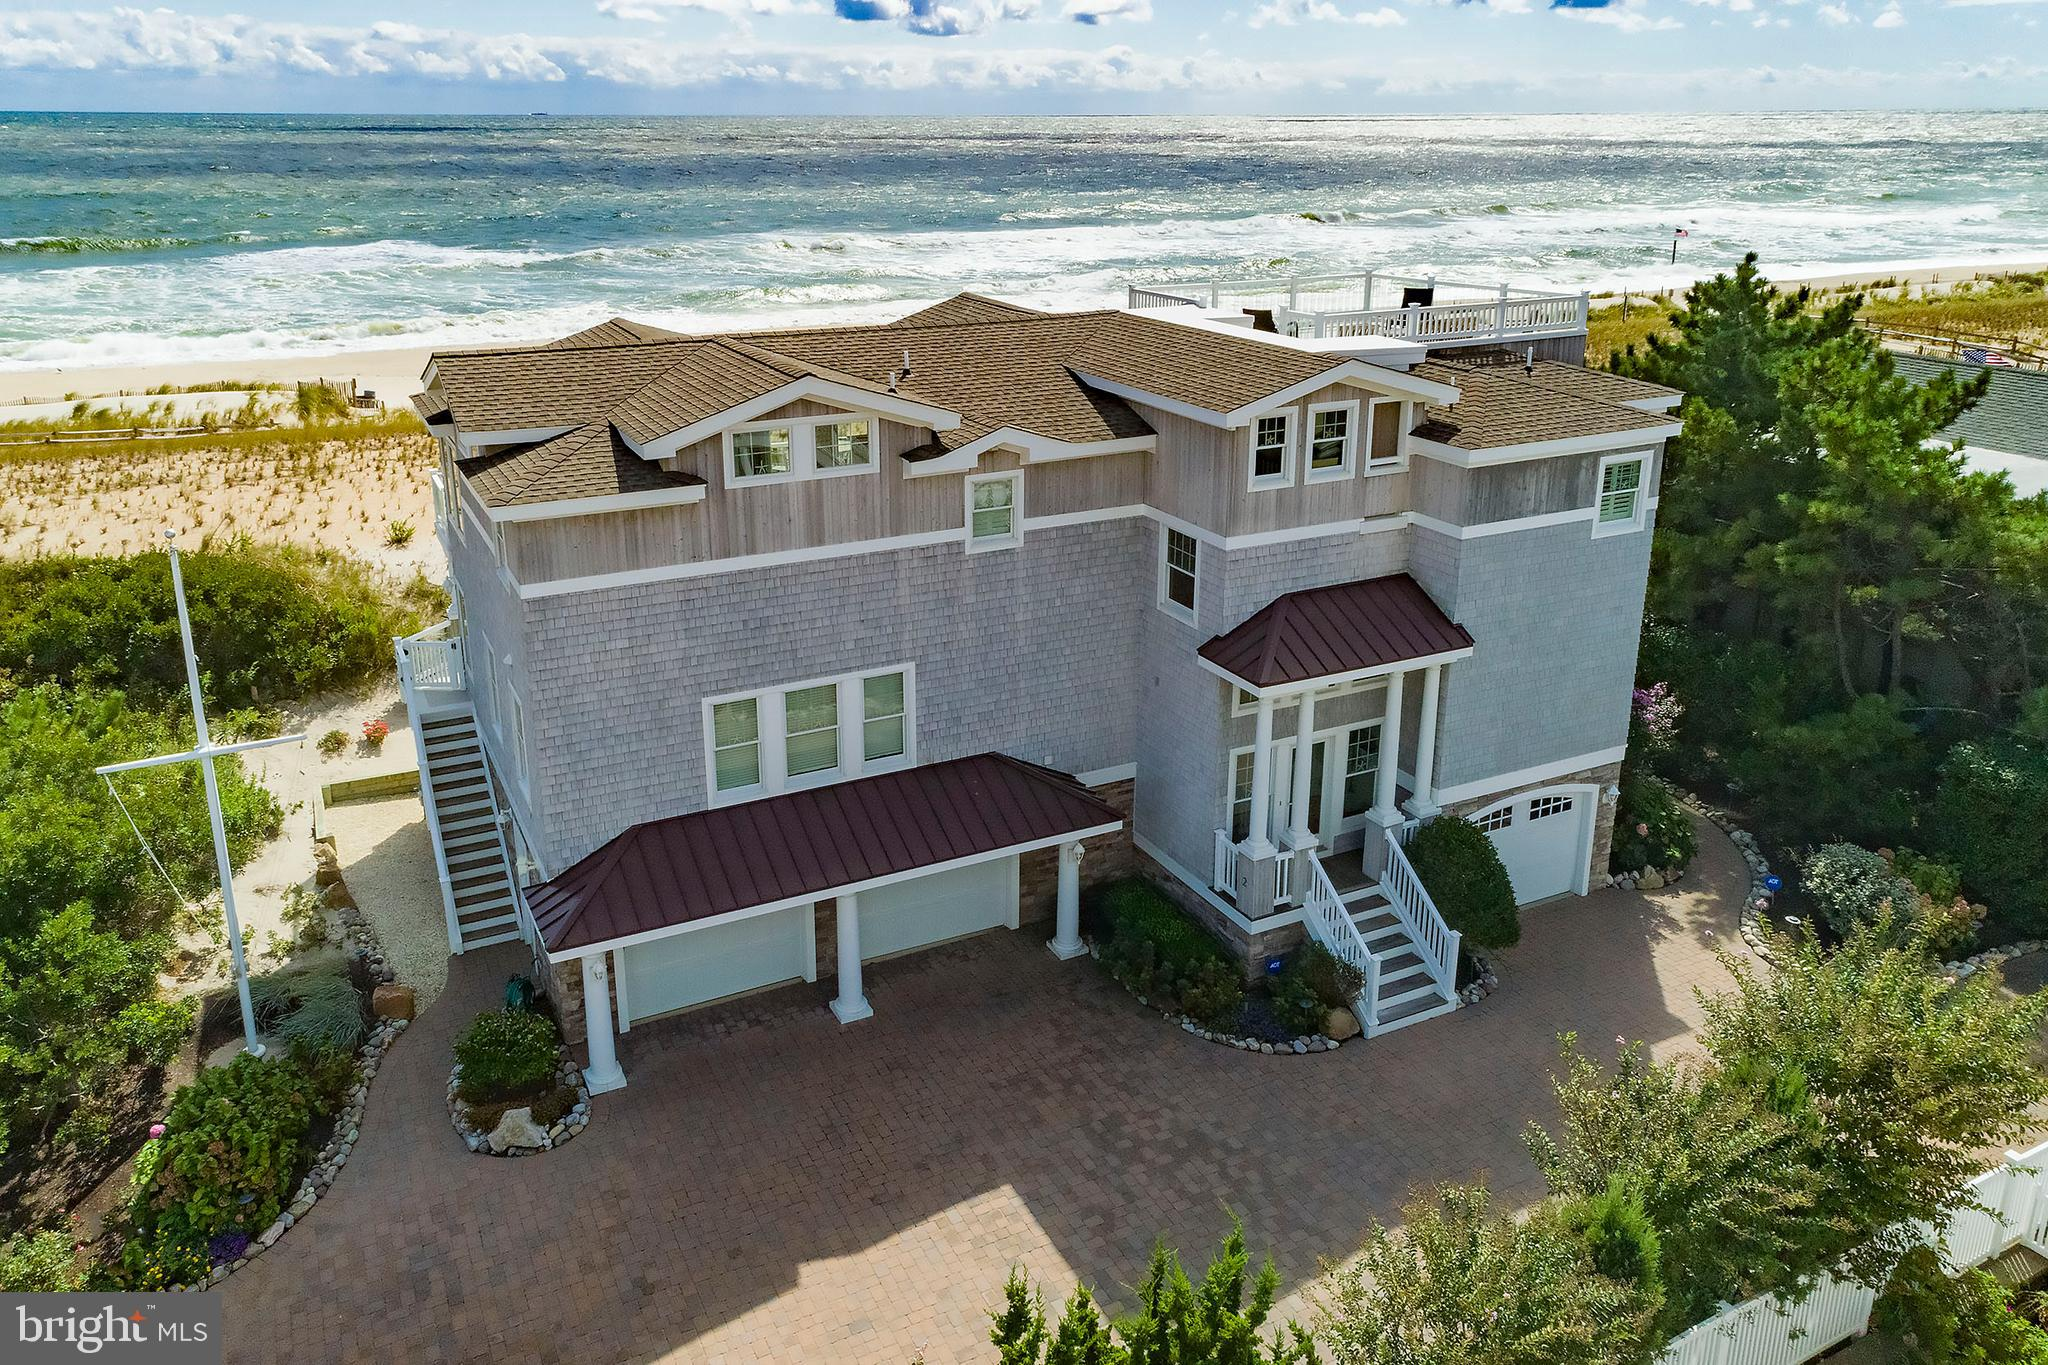 2 MARINE STREET, BEACH HAVEN, NJ 08008